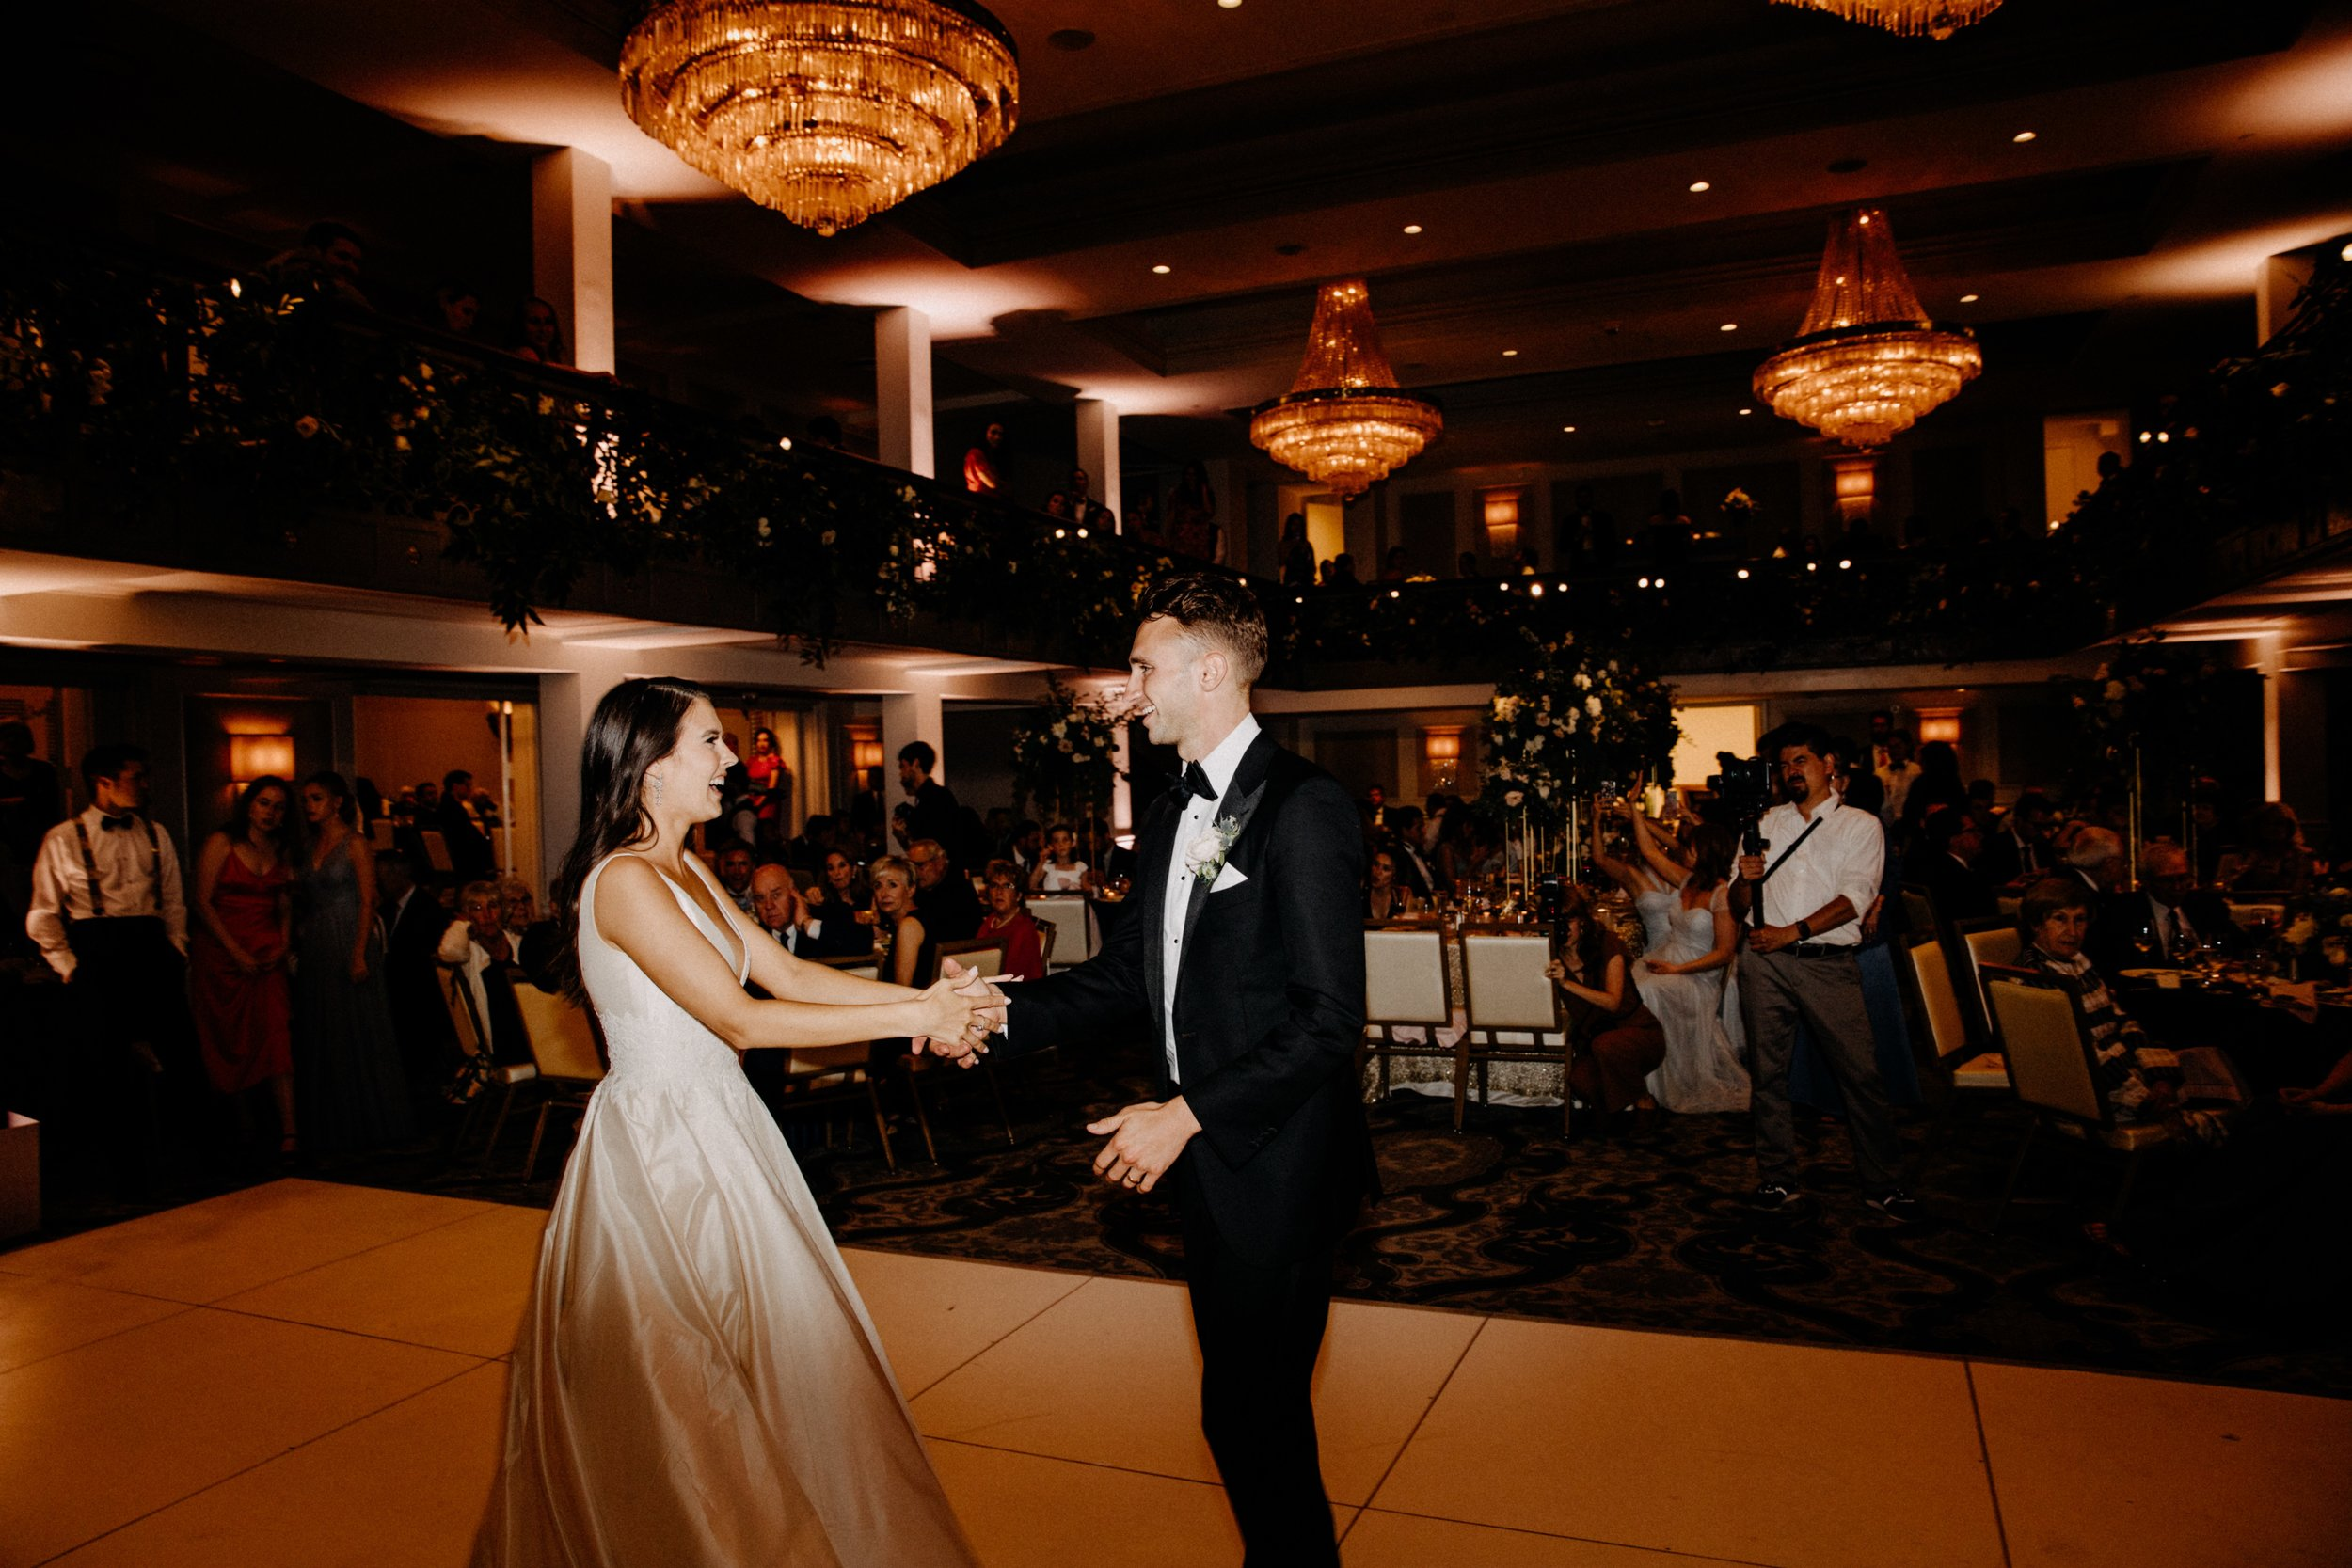 st-anthony-hotel-wedding-photography-10154san-antonio.JPG